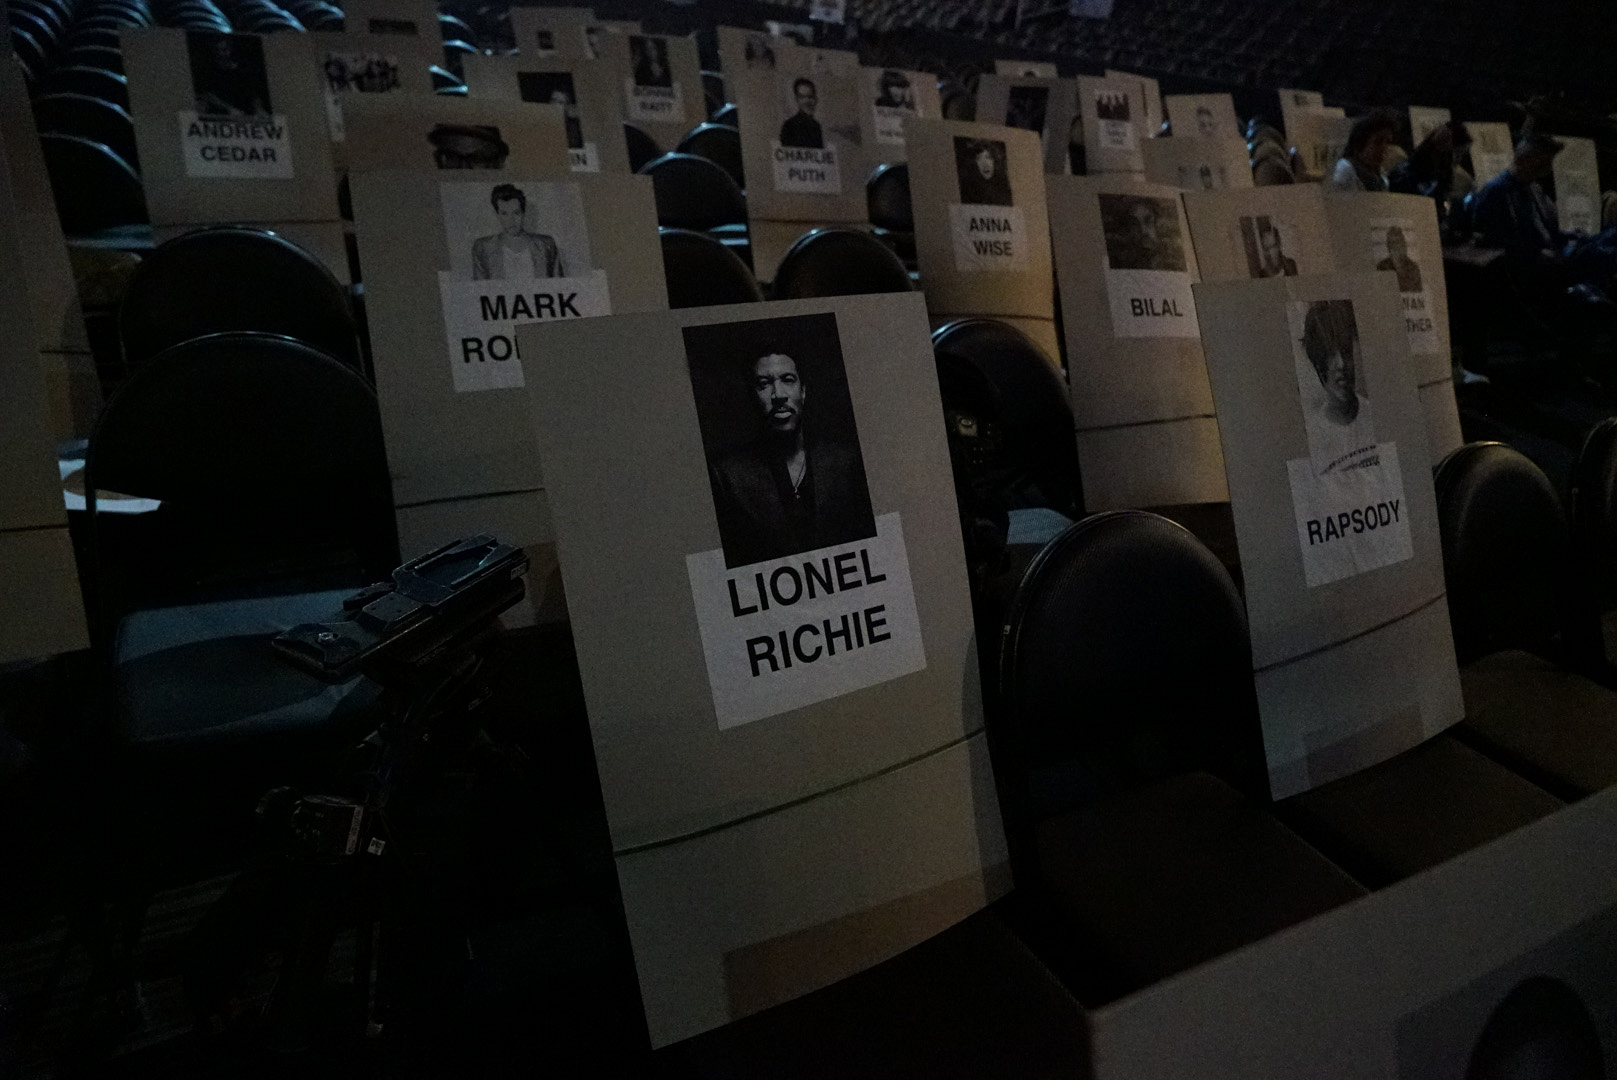 Mark Ronson, Lionel Richie, and Rapsody will be seated right next to each other at the GRAMMYs.